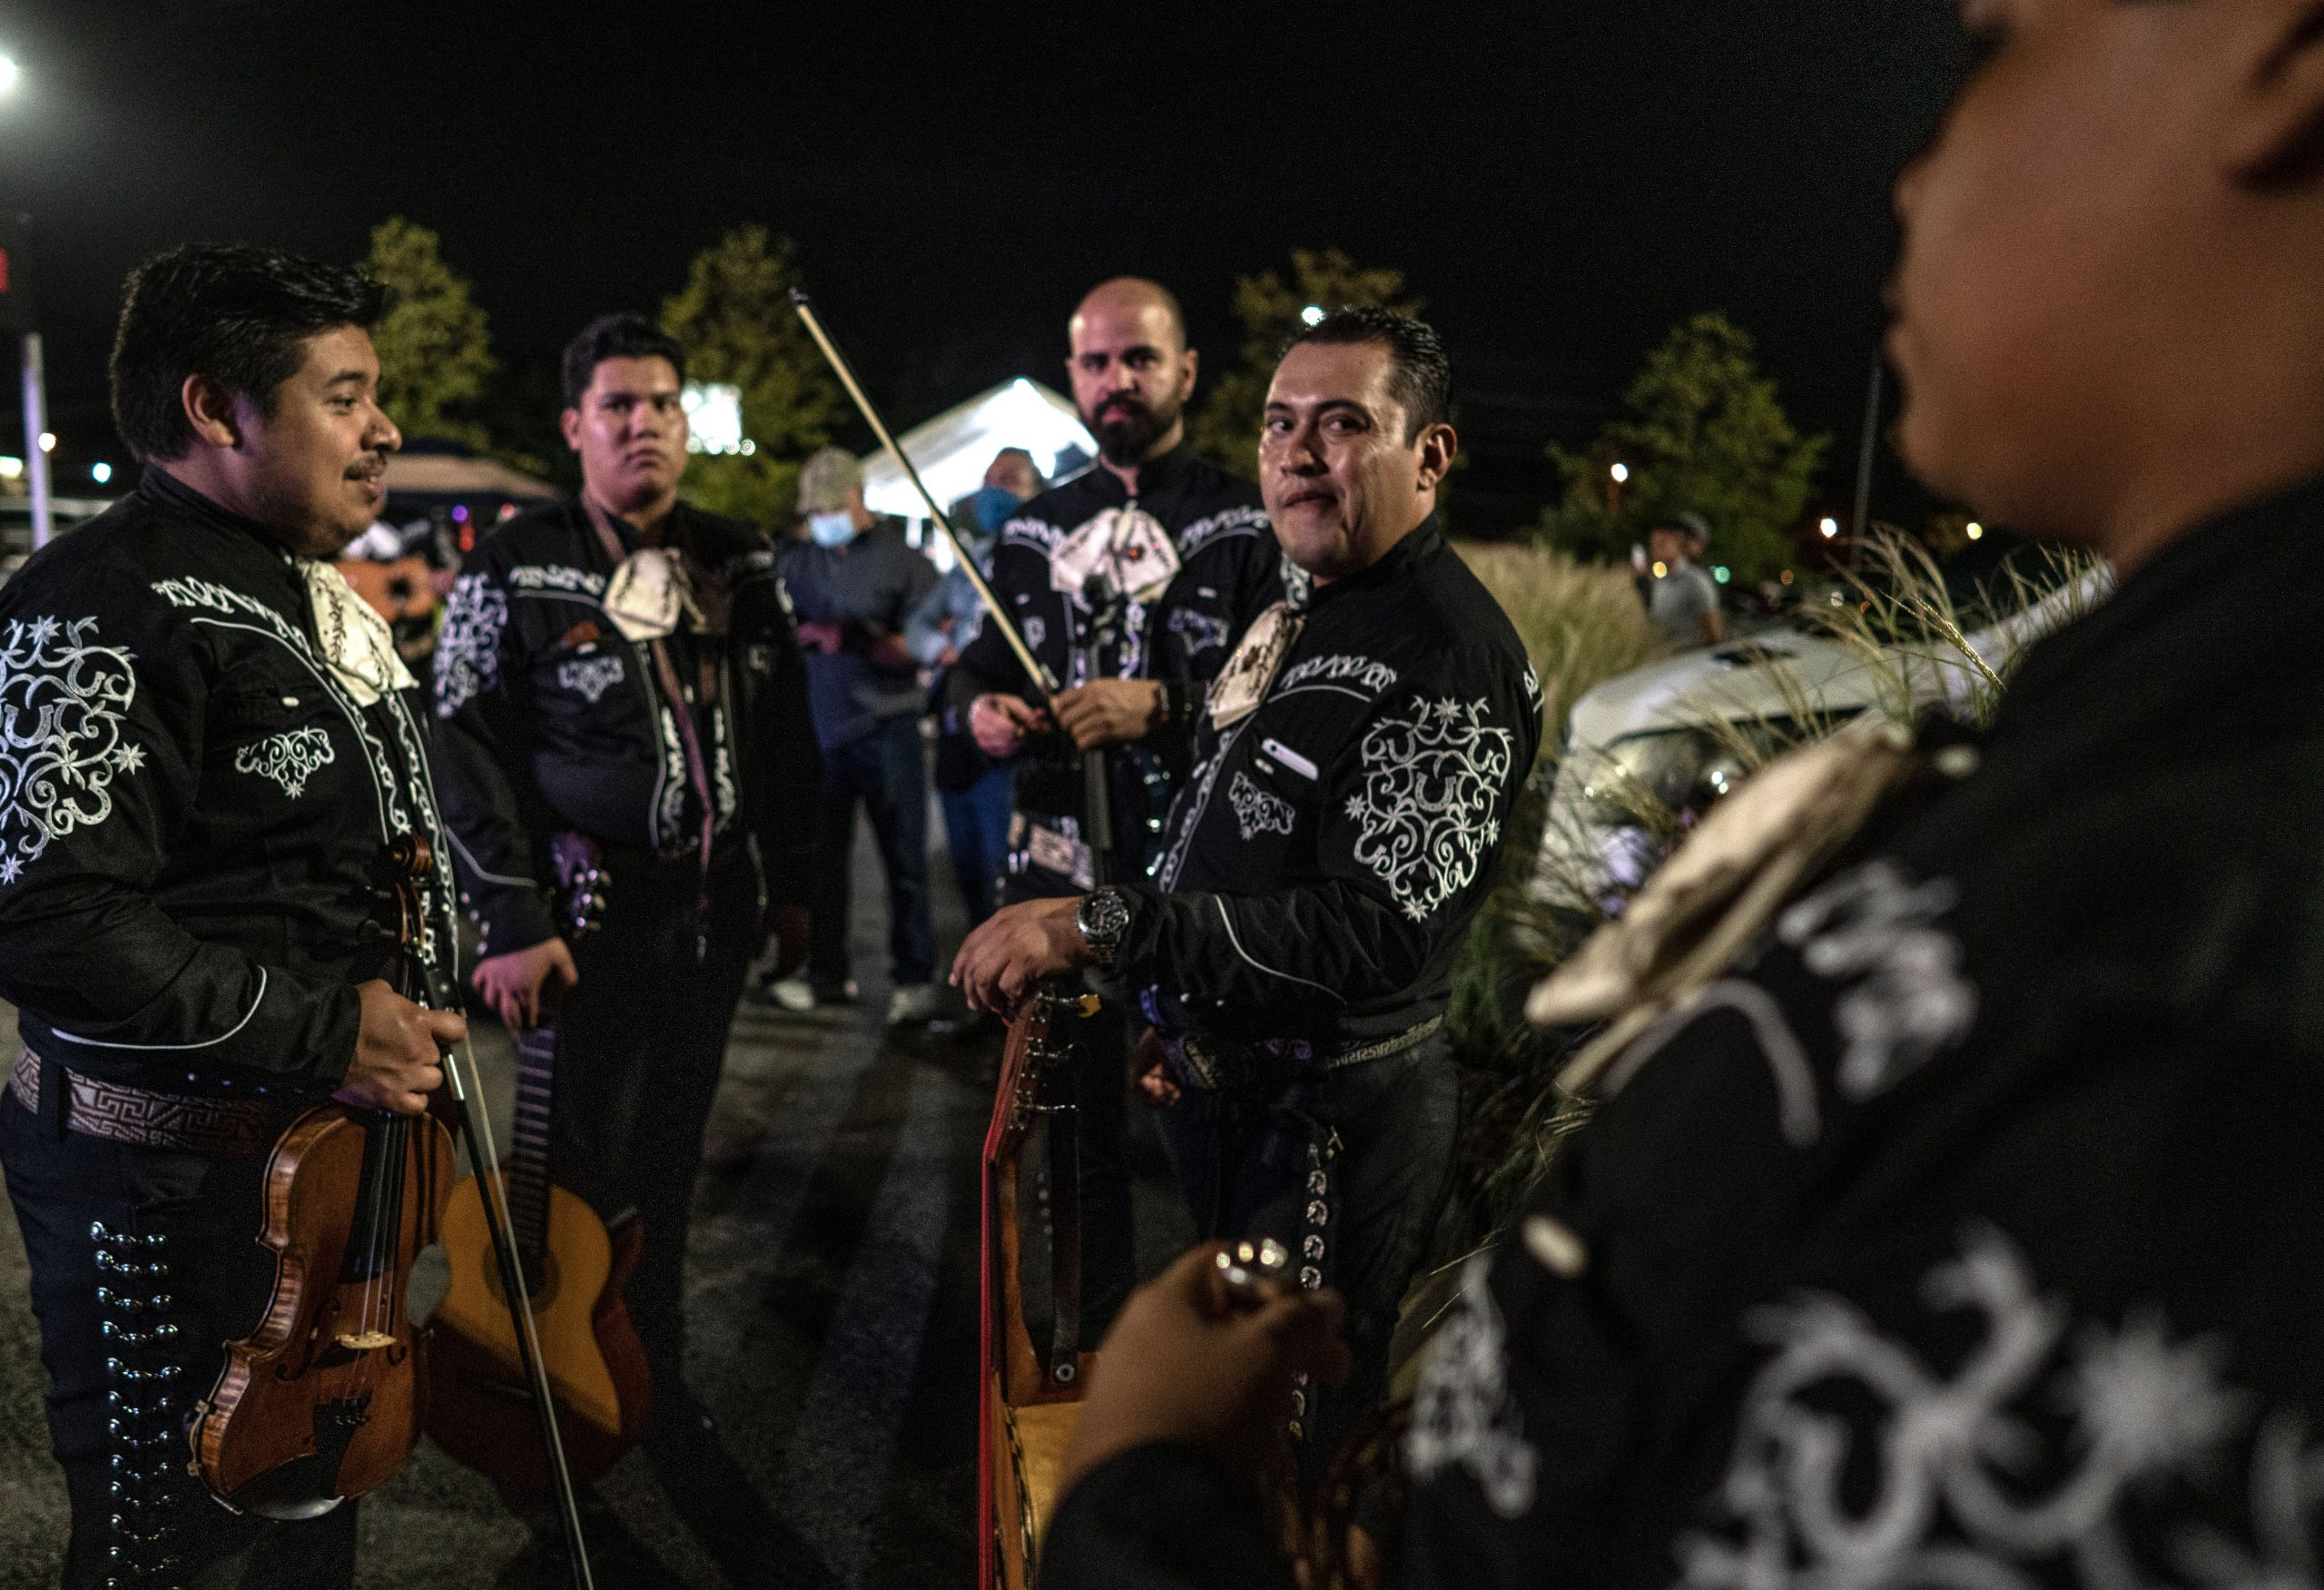 Members of the band Mariachi Nashville get ready to perform with singer Elena Jimenez during Mexican independence day at Plaza Mariachi. (Photo: John Partipilo)